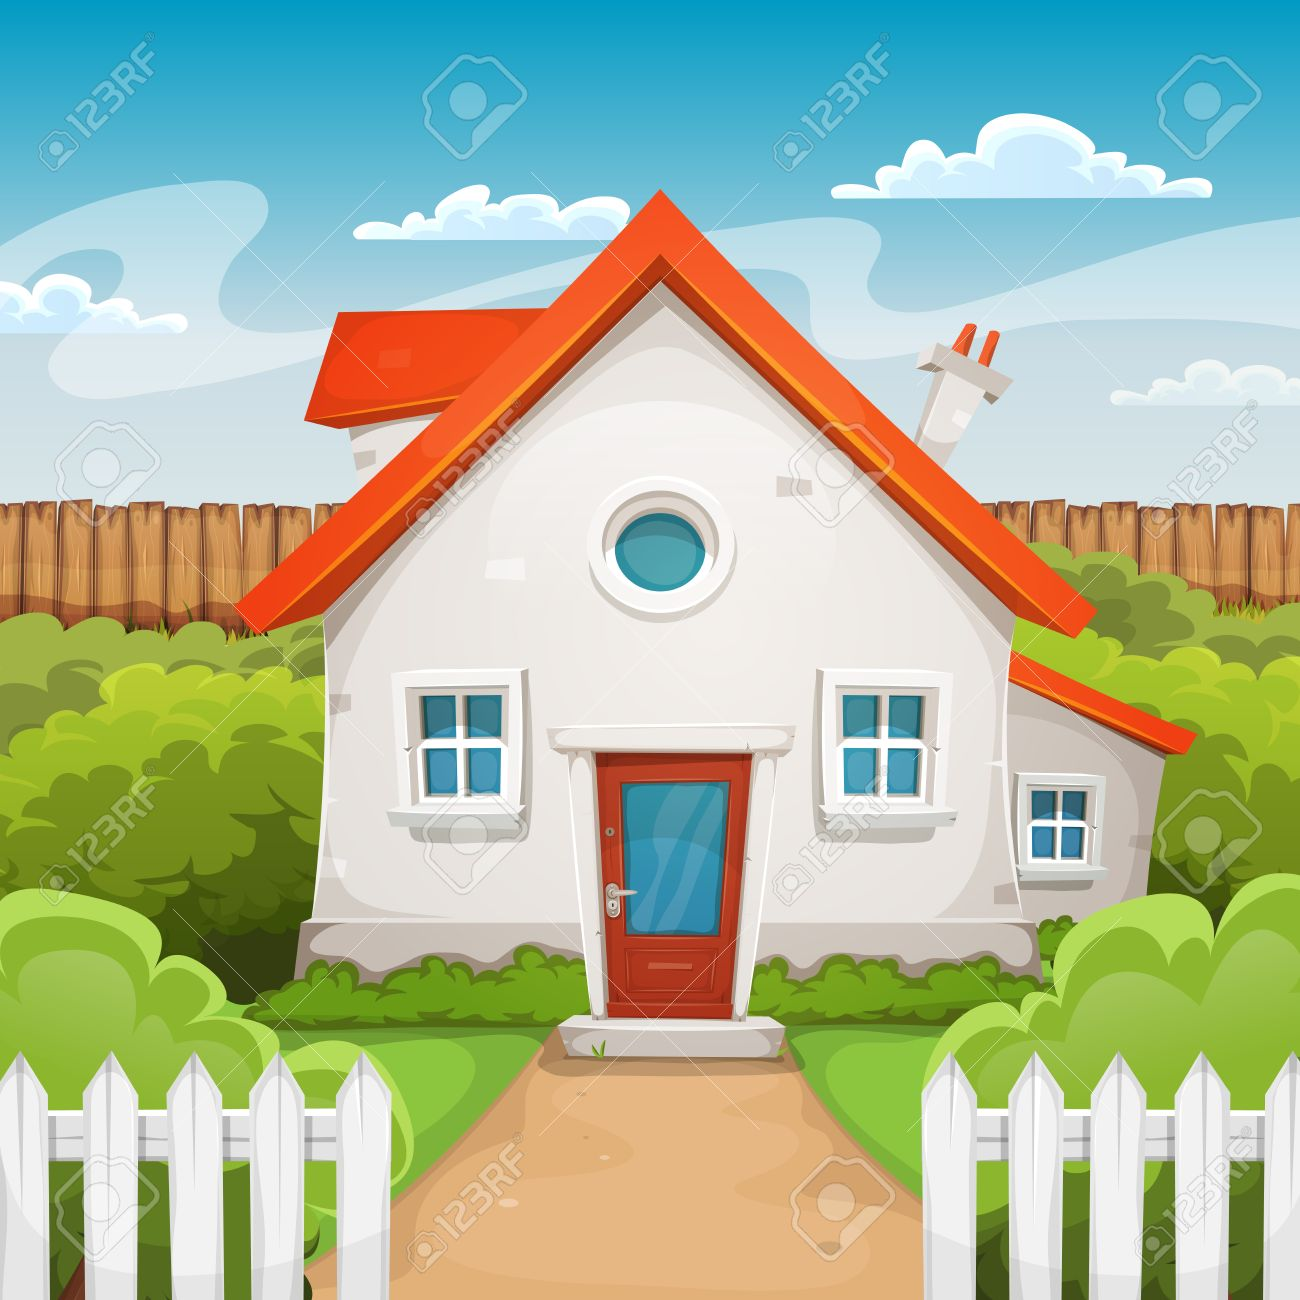 illustration of a cartoon domestic house in spring or summer